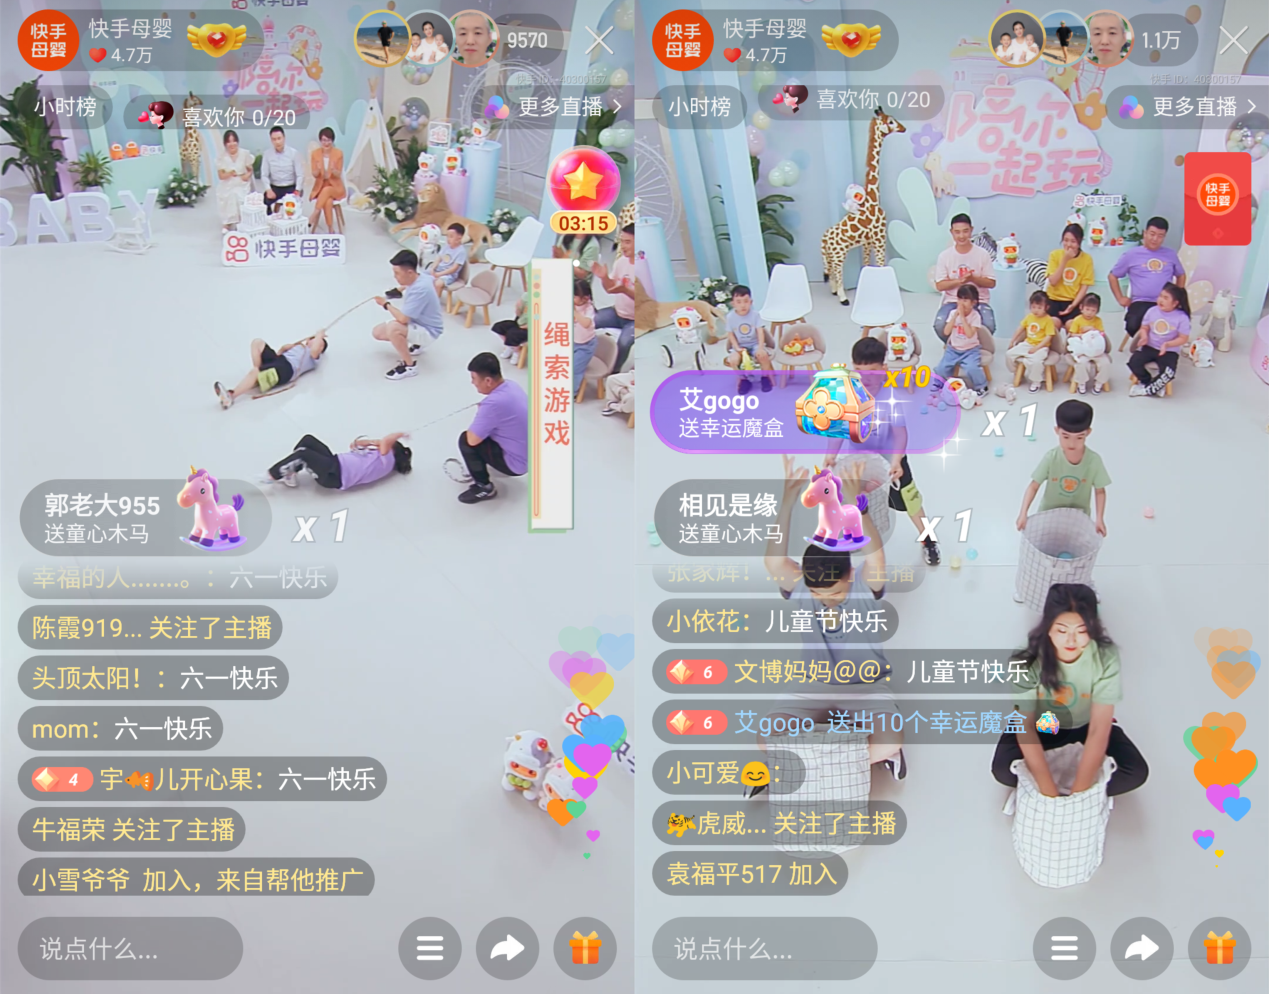 C:\Users\kyuu\Pictures\Screenshot_20210601-183259_副本.png